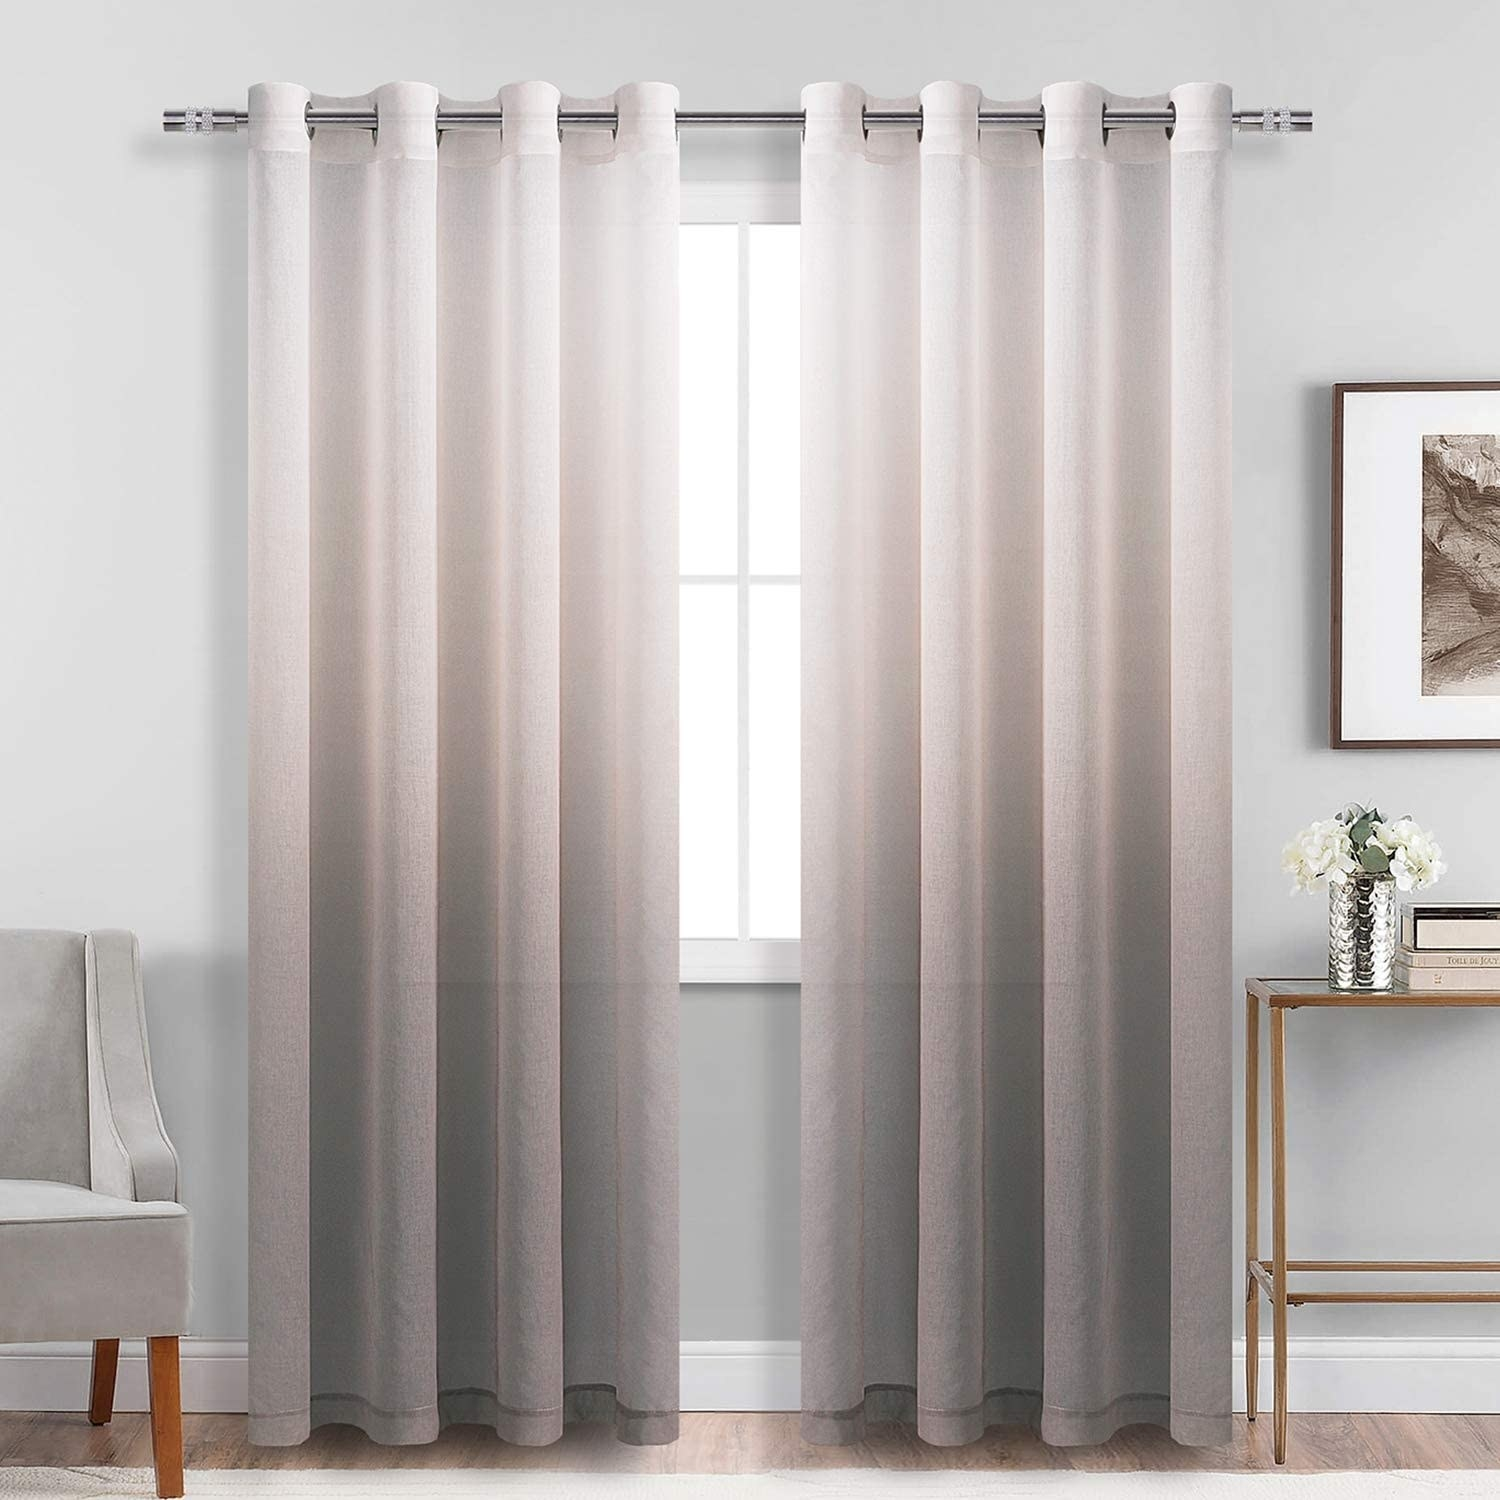 Brown ombre curtains